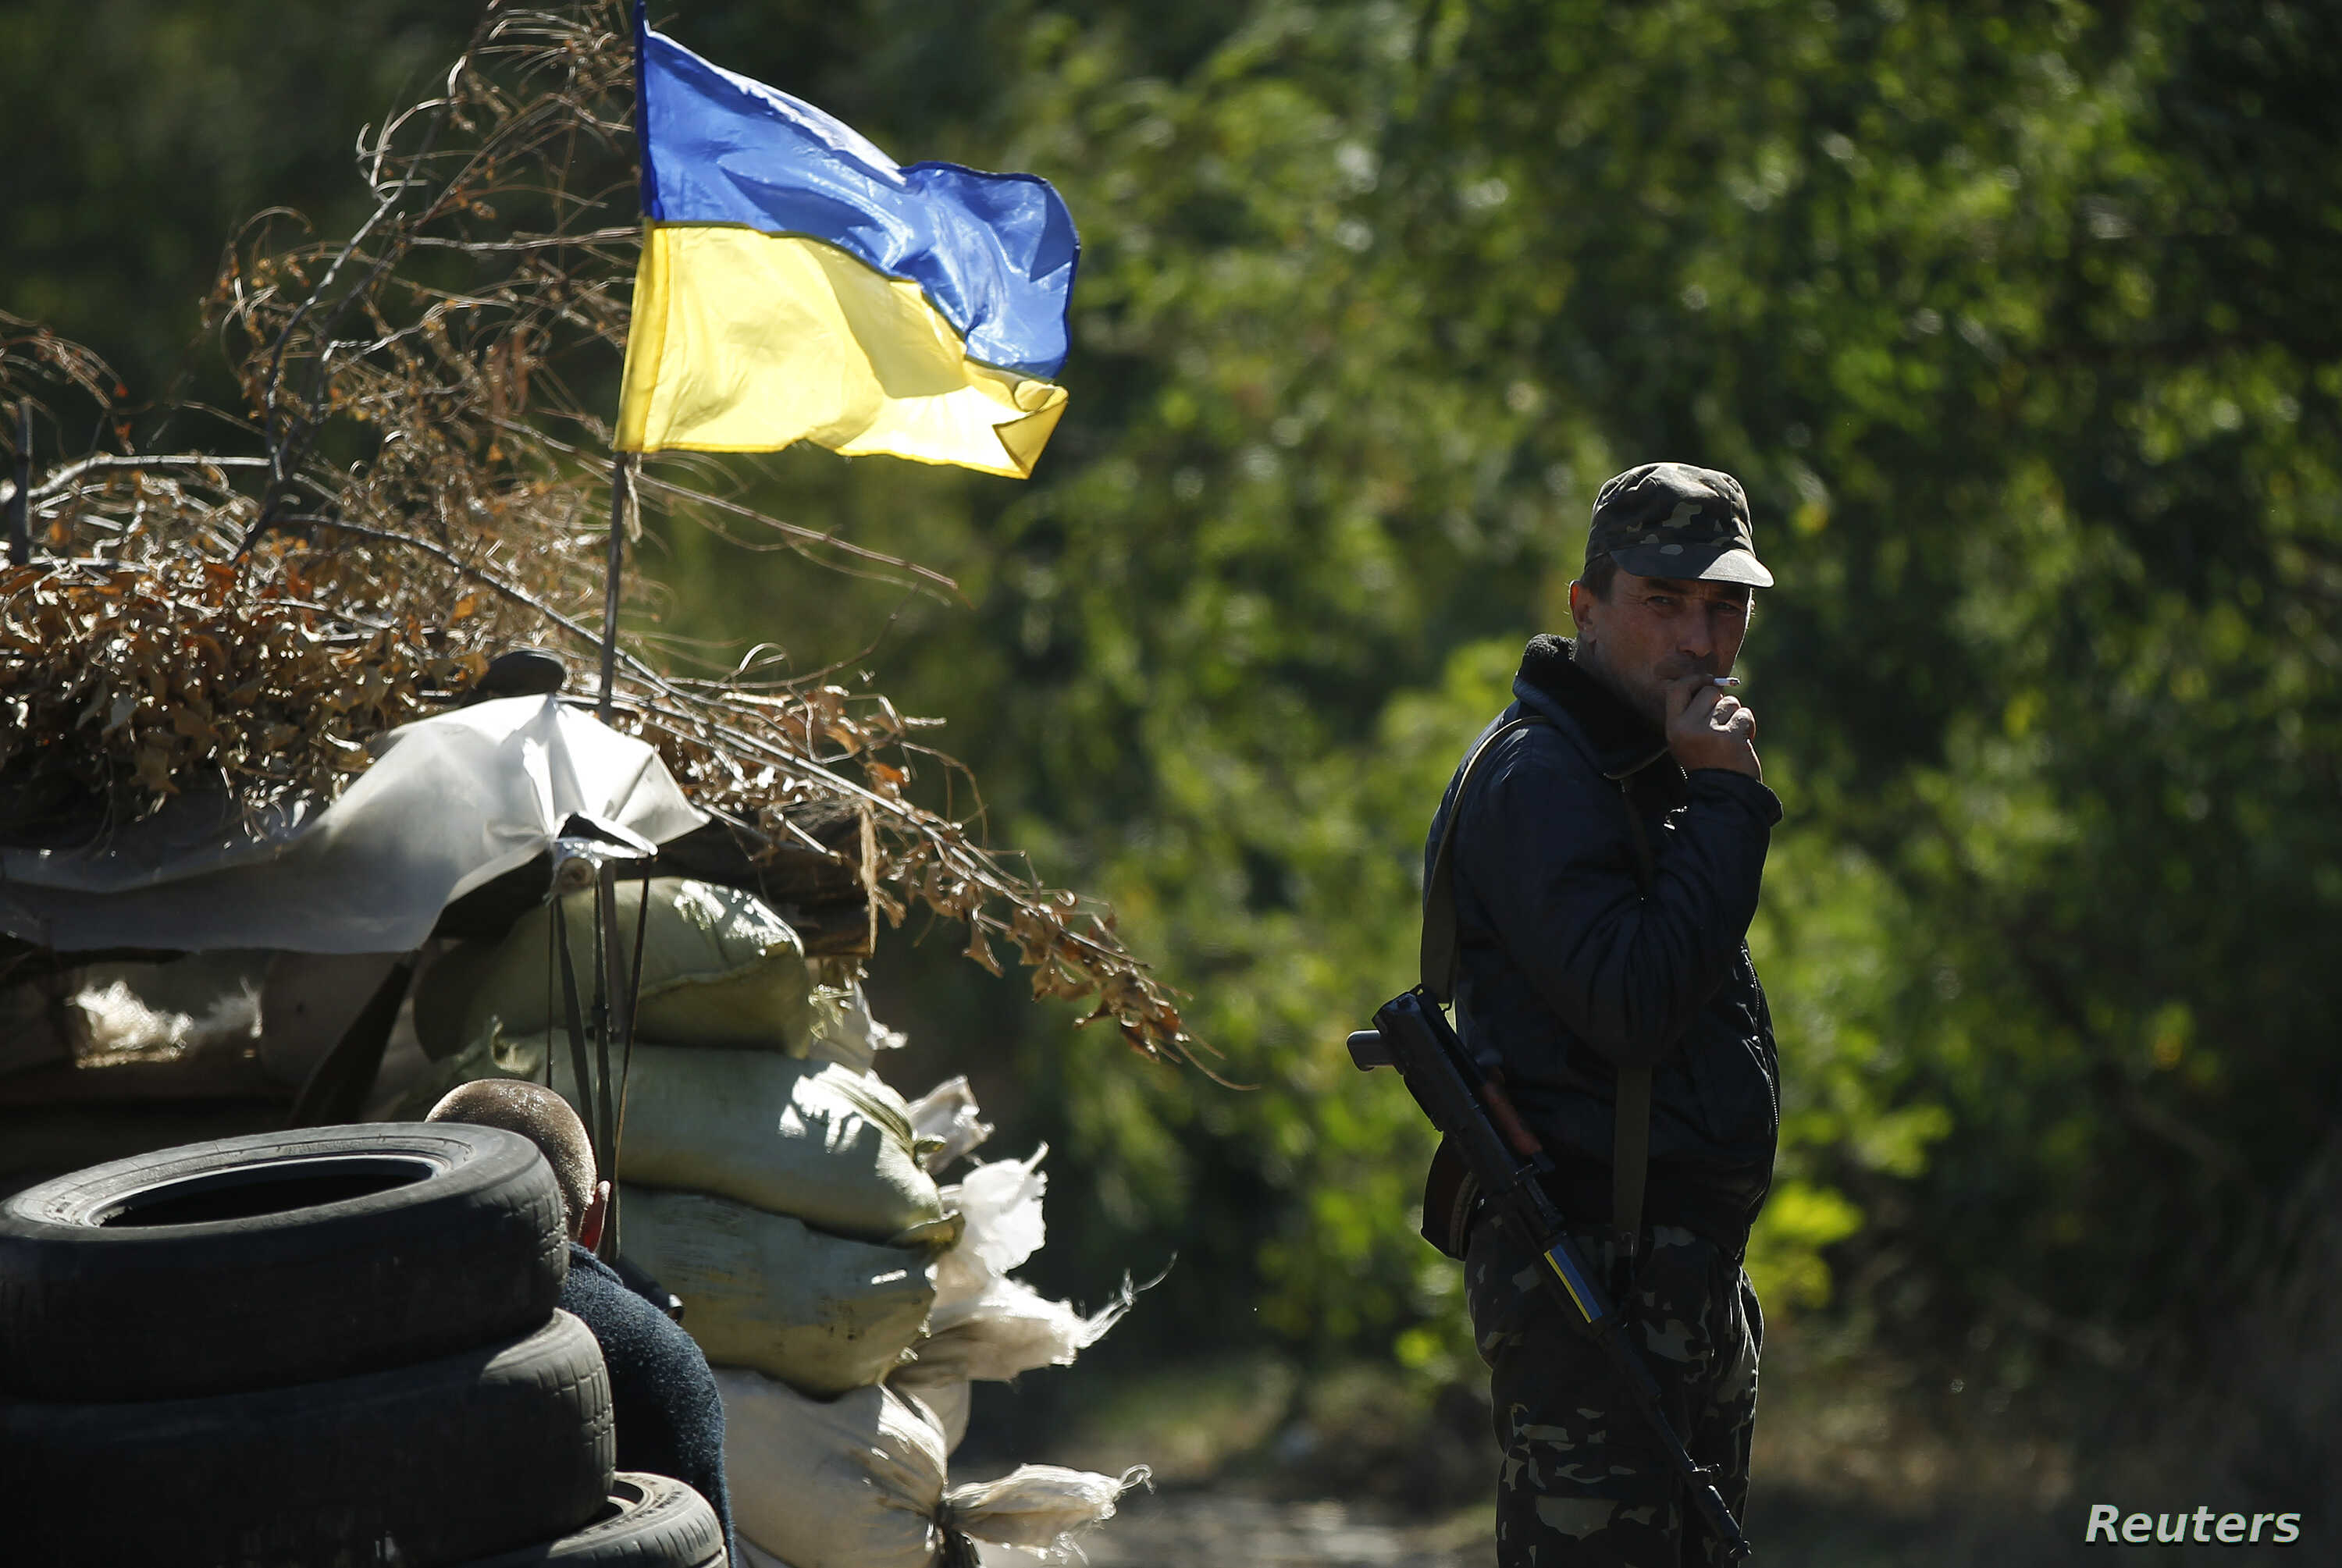 A Ukrainian serviceman smokes at a checkpoint near the town of Horlivka, Donetsk region, in eastern Ukraine, Sept. 18, 2014.